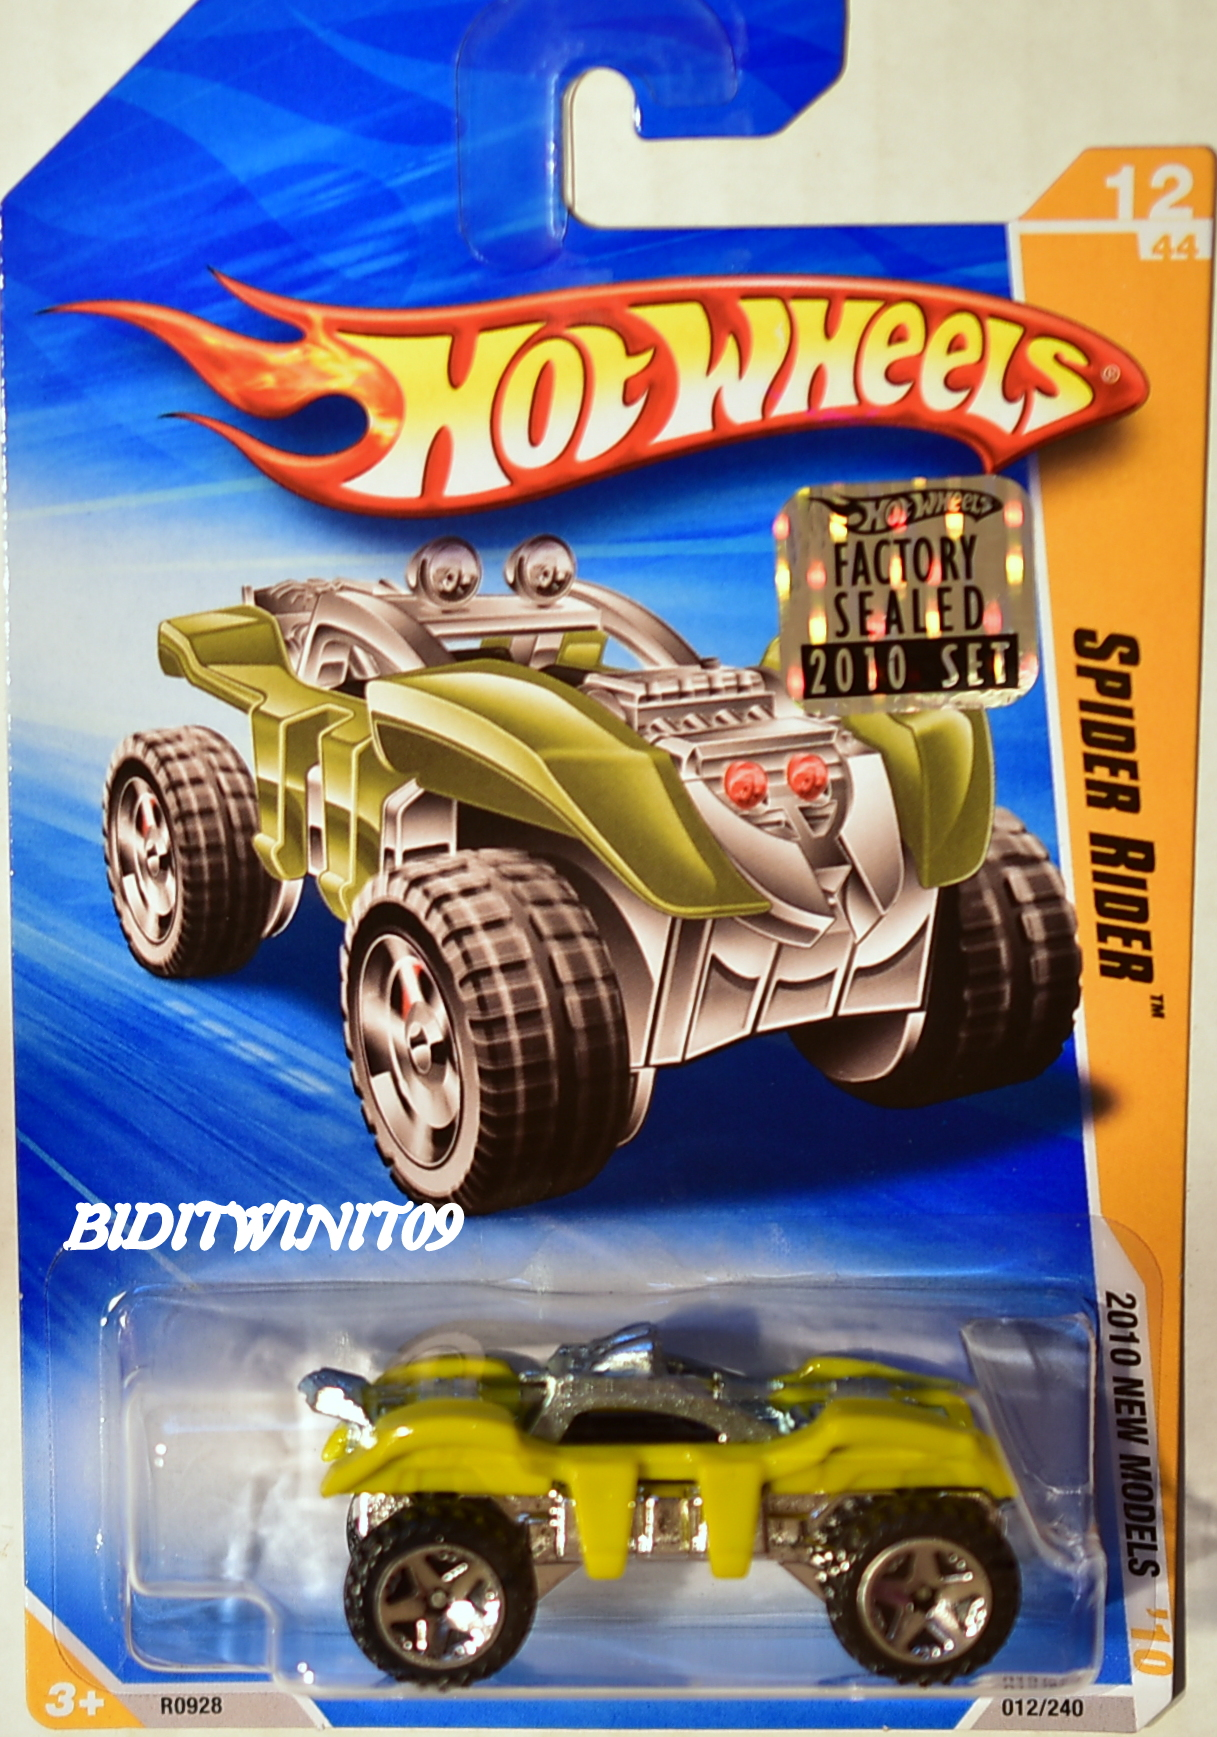 HOT WHEELS 2010 NEW MODELS SPIDER RIDER #12/44 YELLOW FACTORY SEALED E+